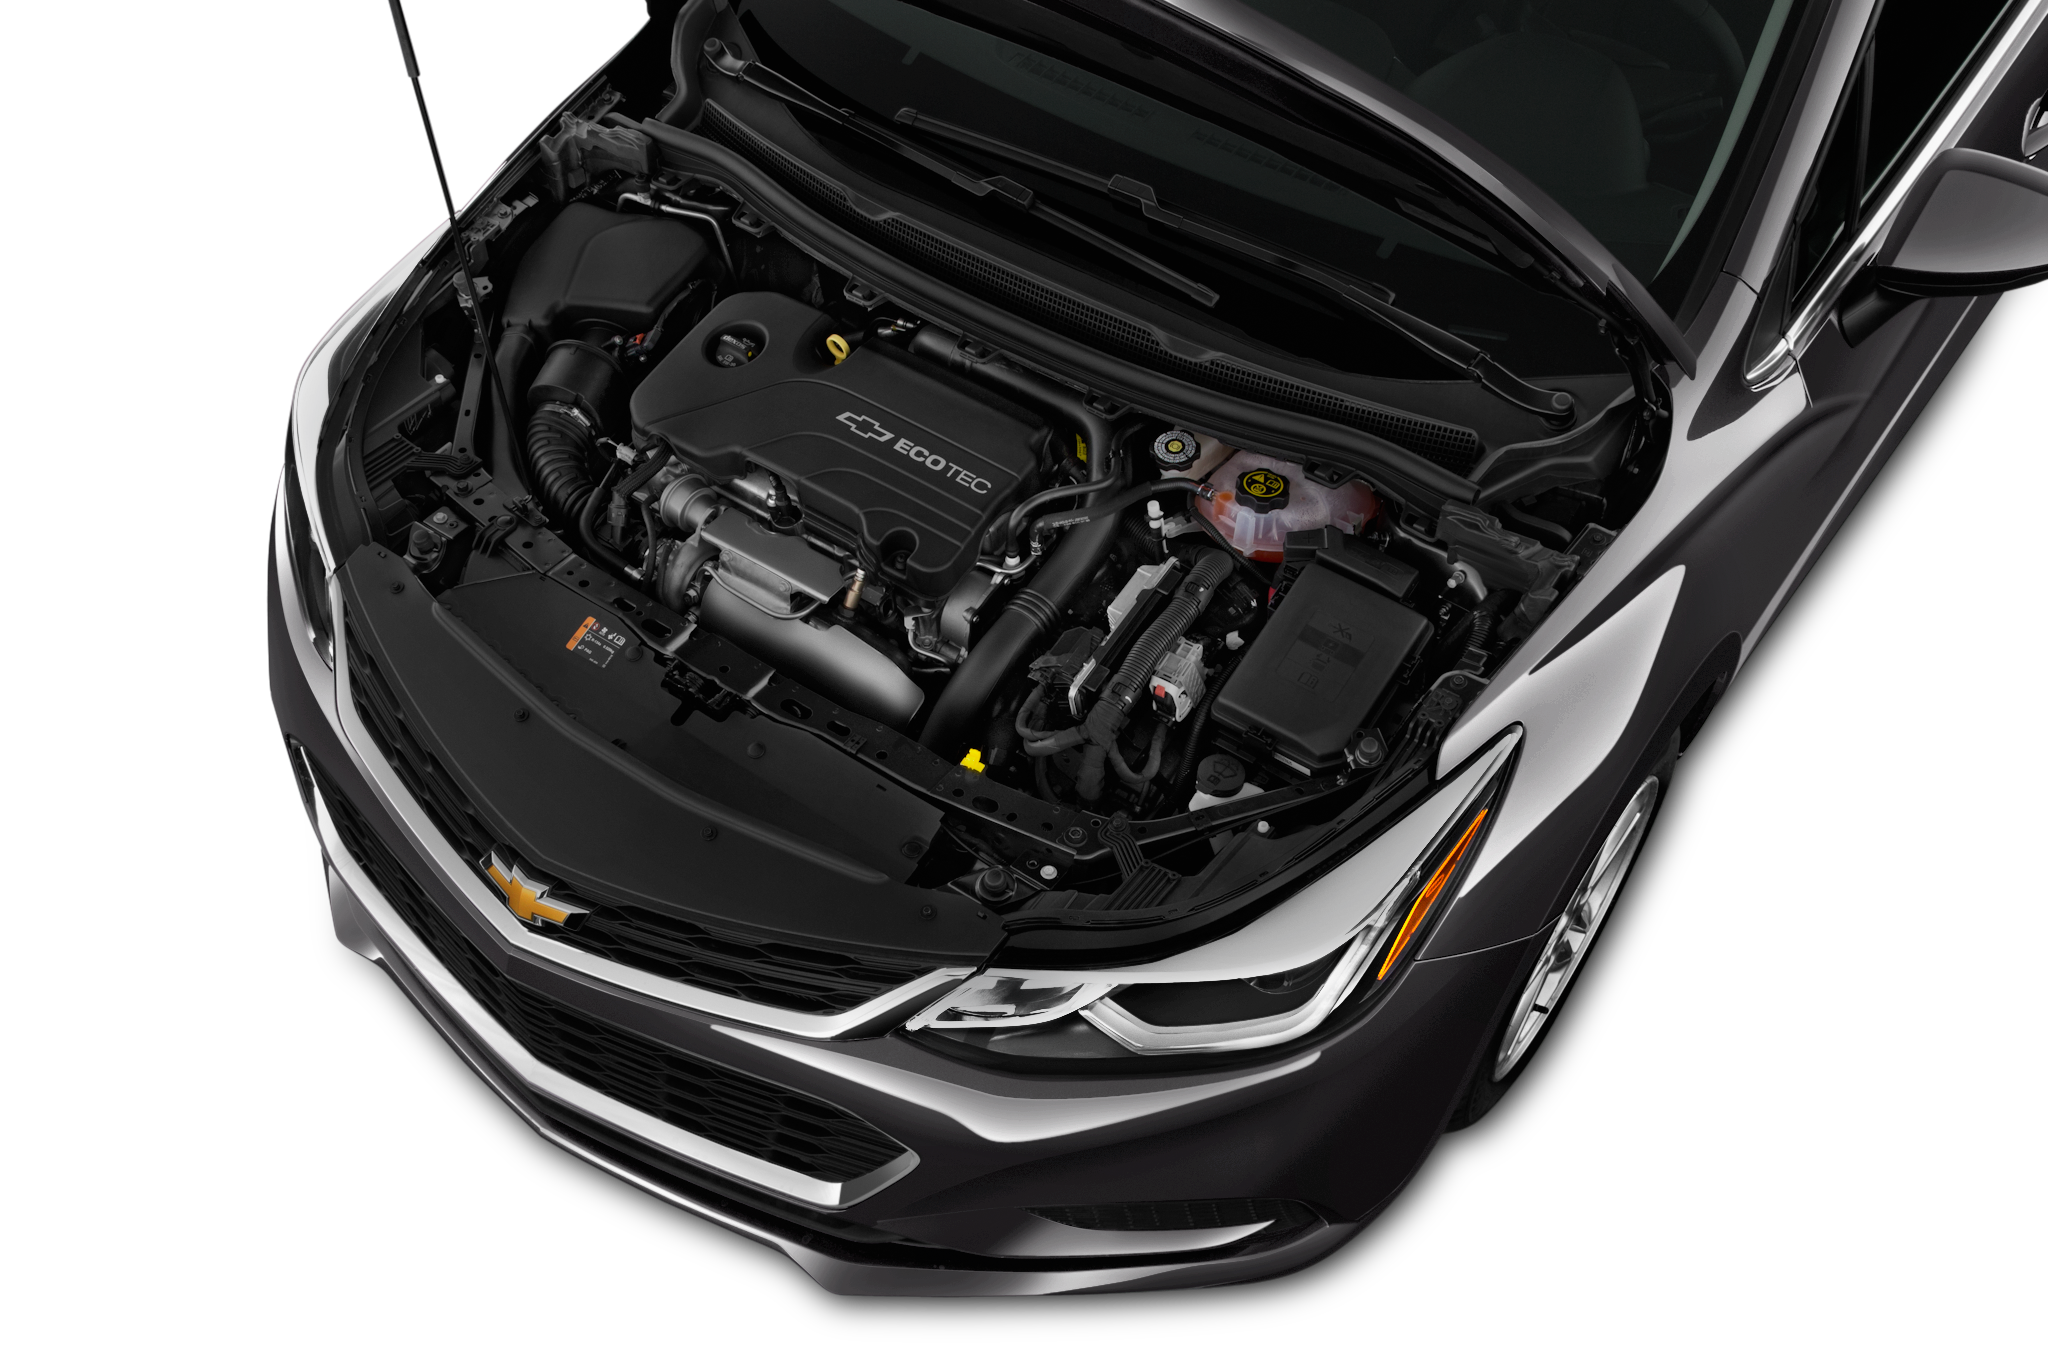 2016 Chevrolet Cruze Is Lighter And More Spacious Trailer Wiring Harness Installation 2015 Sonic Video 24 47